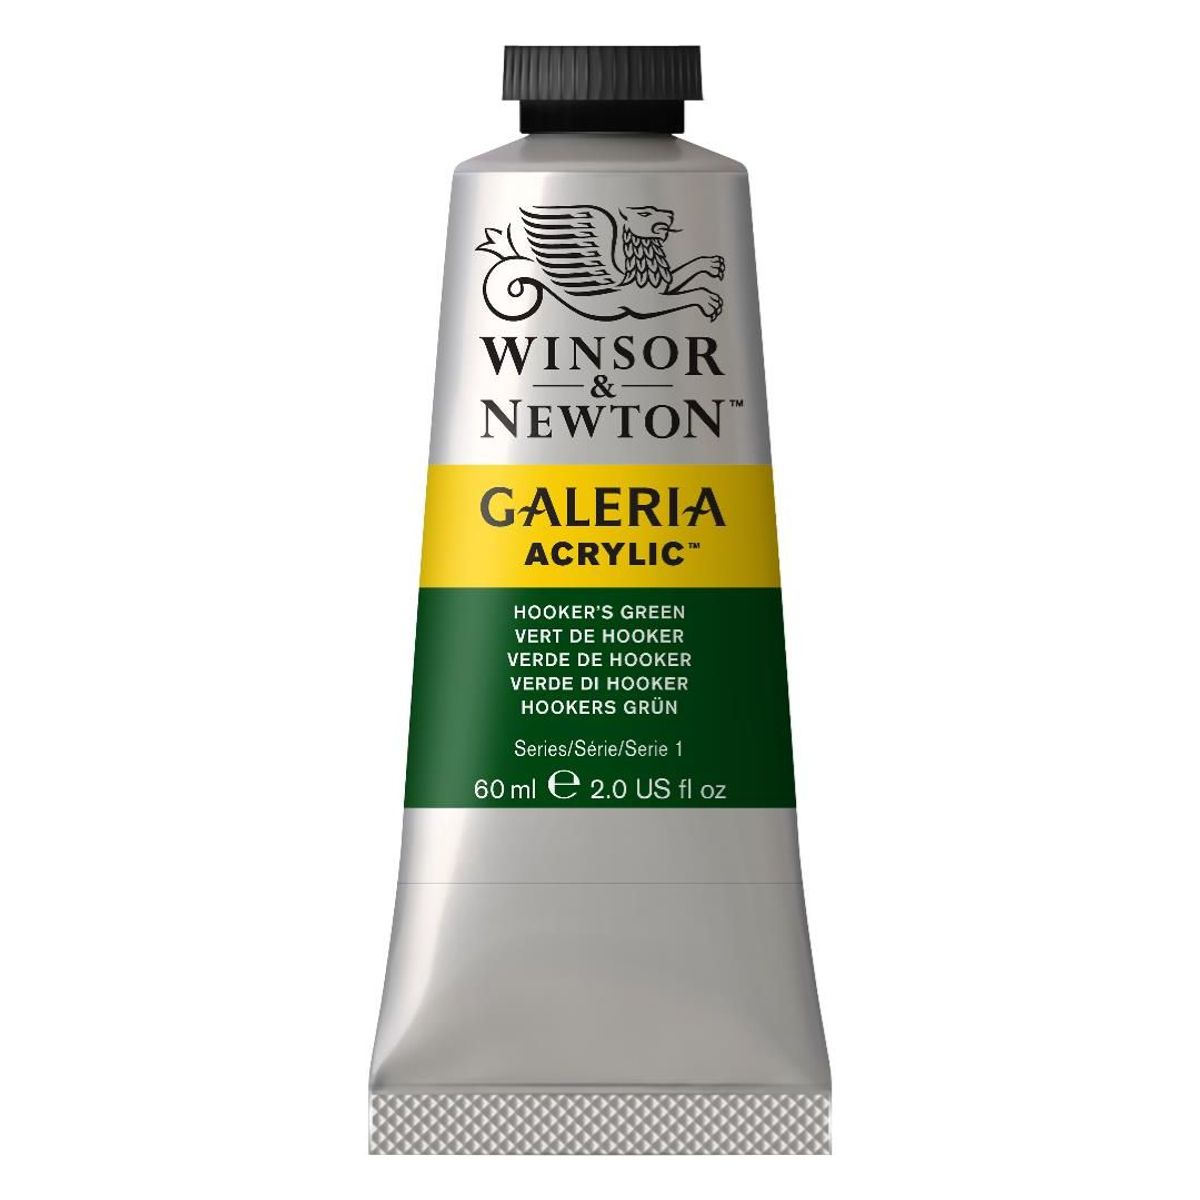 WINSOR AND NEWTON GALERIA ACRYLIC COLOUR - TUBE OF 60 ML - HOOKER'S GREEN (311)